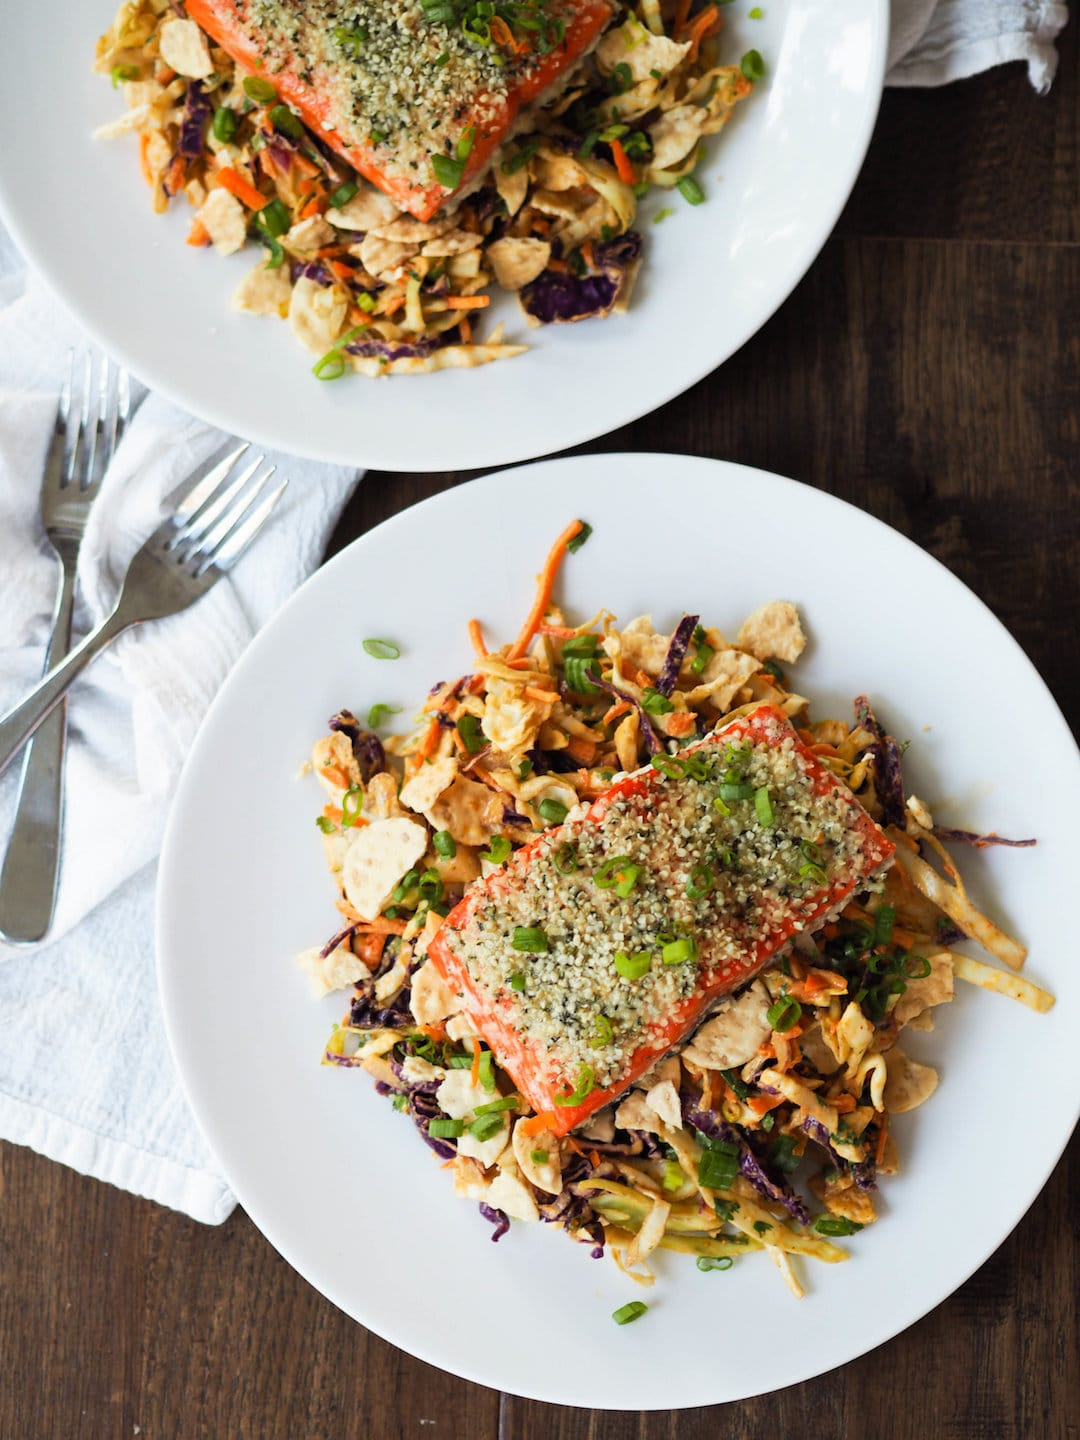 13+ Healthy Recipes with Hemp Hearts - Hemp Crusted Salmon with Peanut Slaw